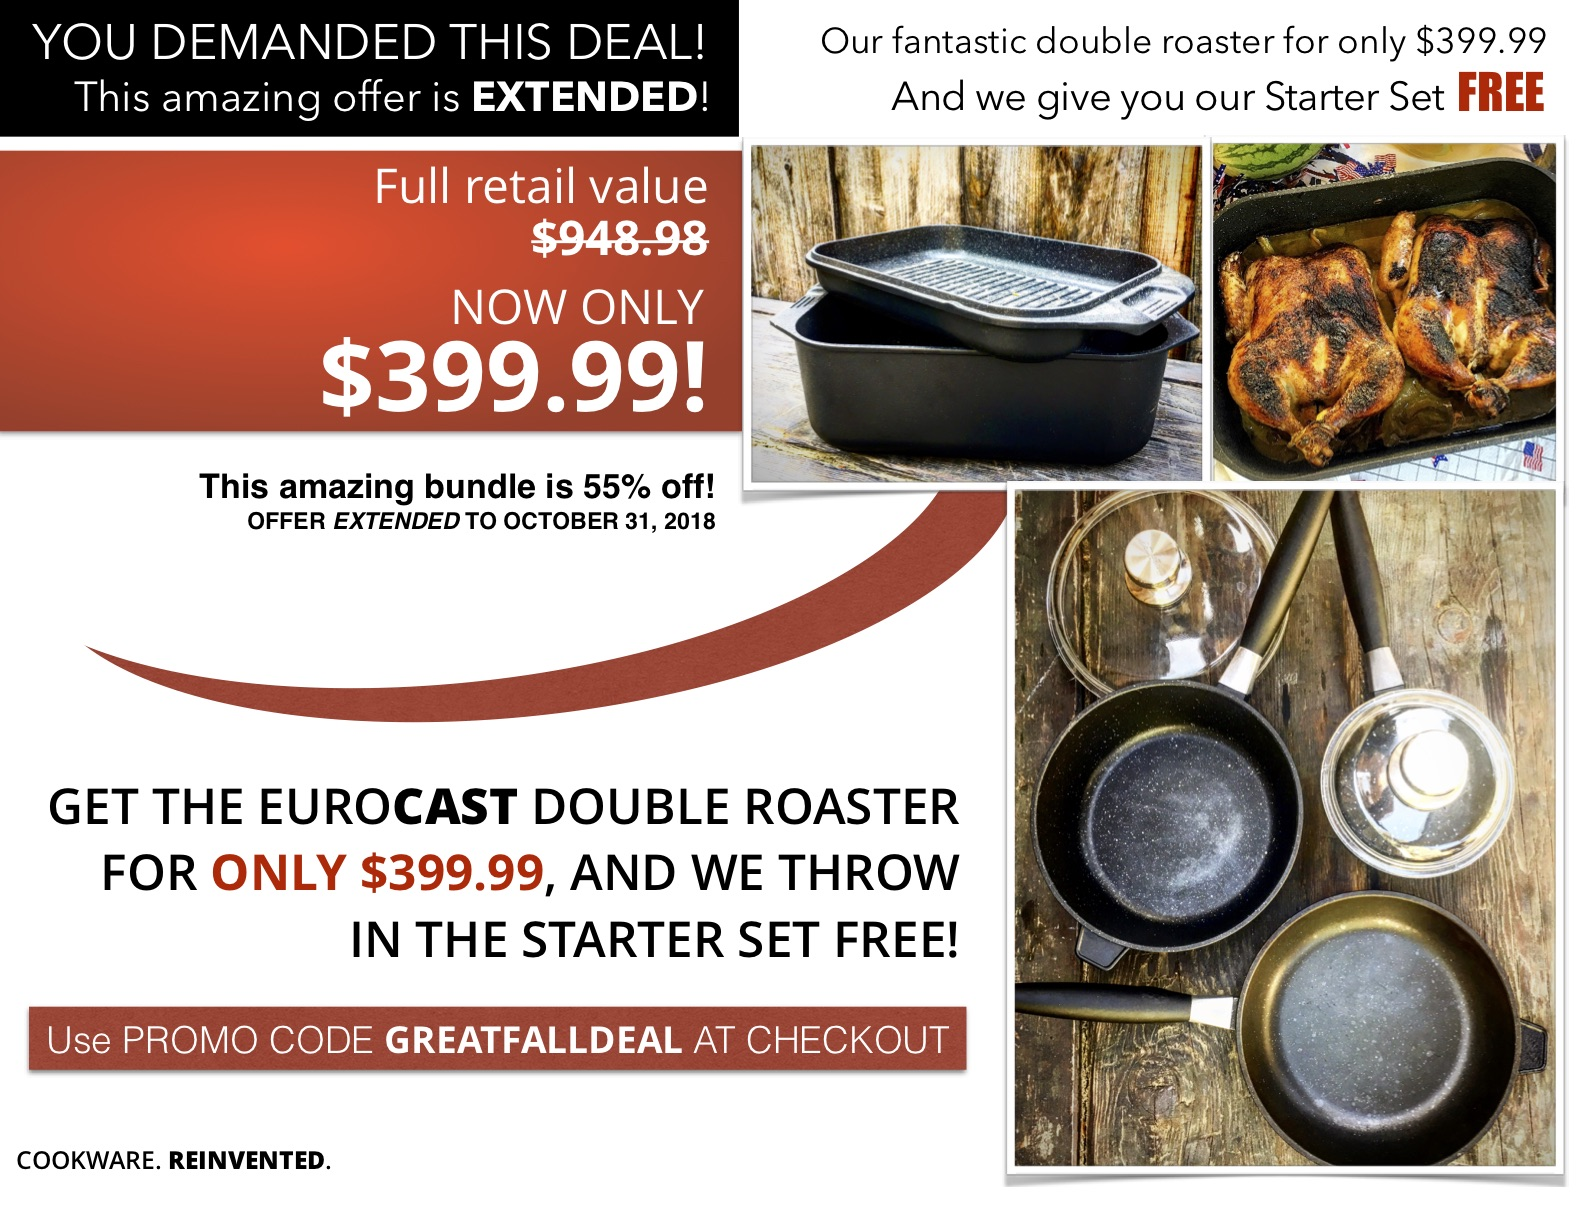 Be sure to use the GREATFALLDEAL promo code when checking out to win your savings!